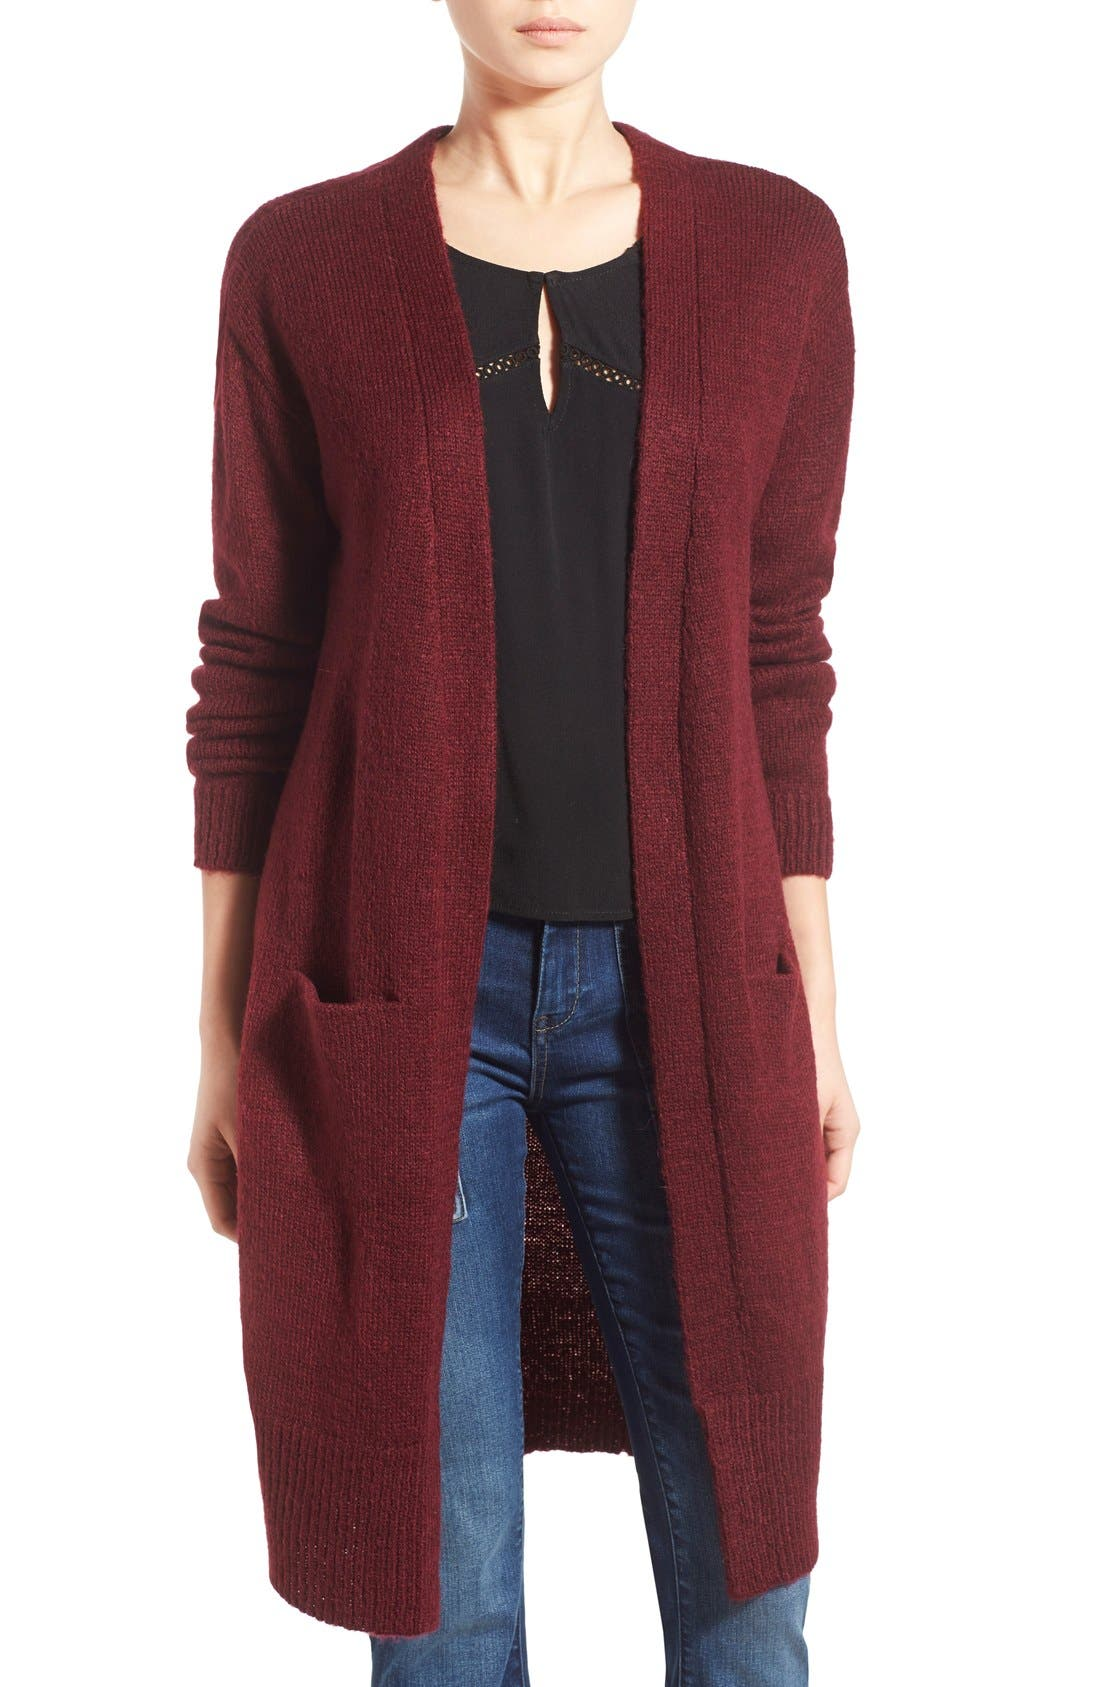 Alternate Image 1 Selected - J.O.A. Oversize Cardigan